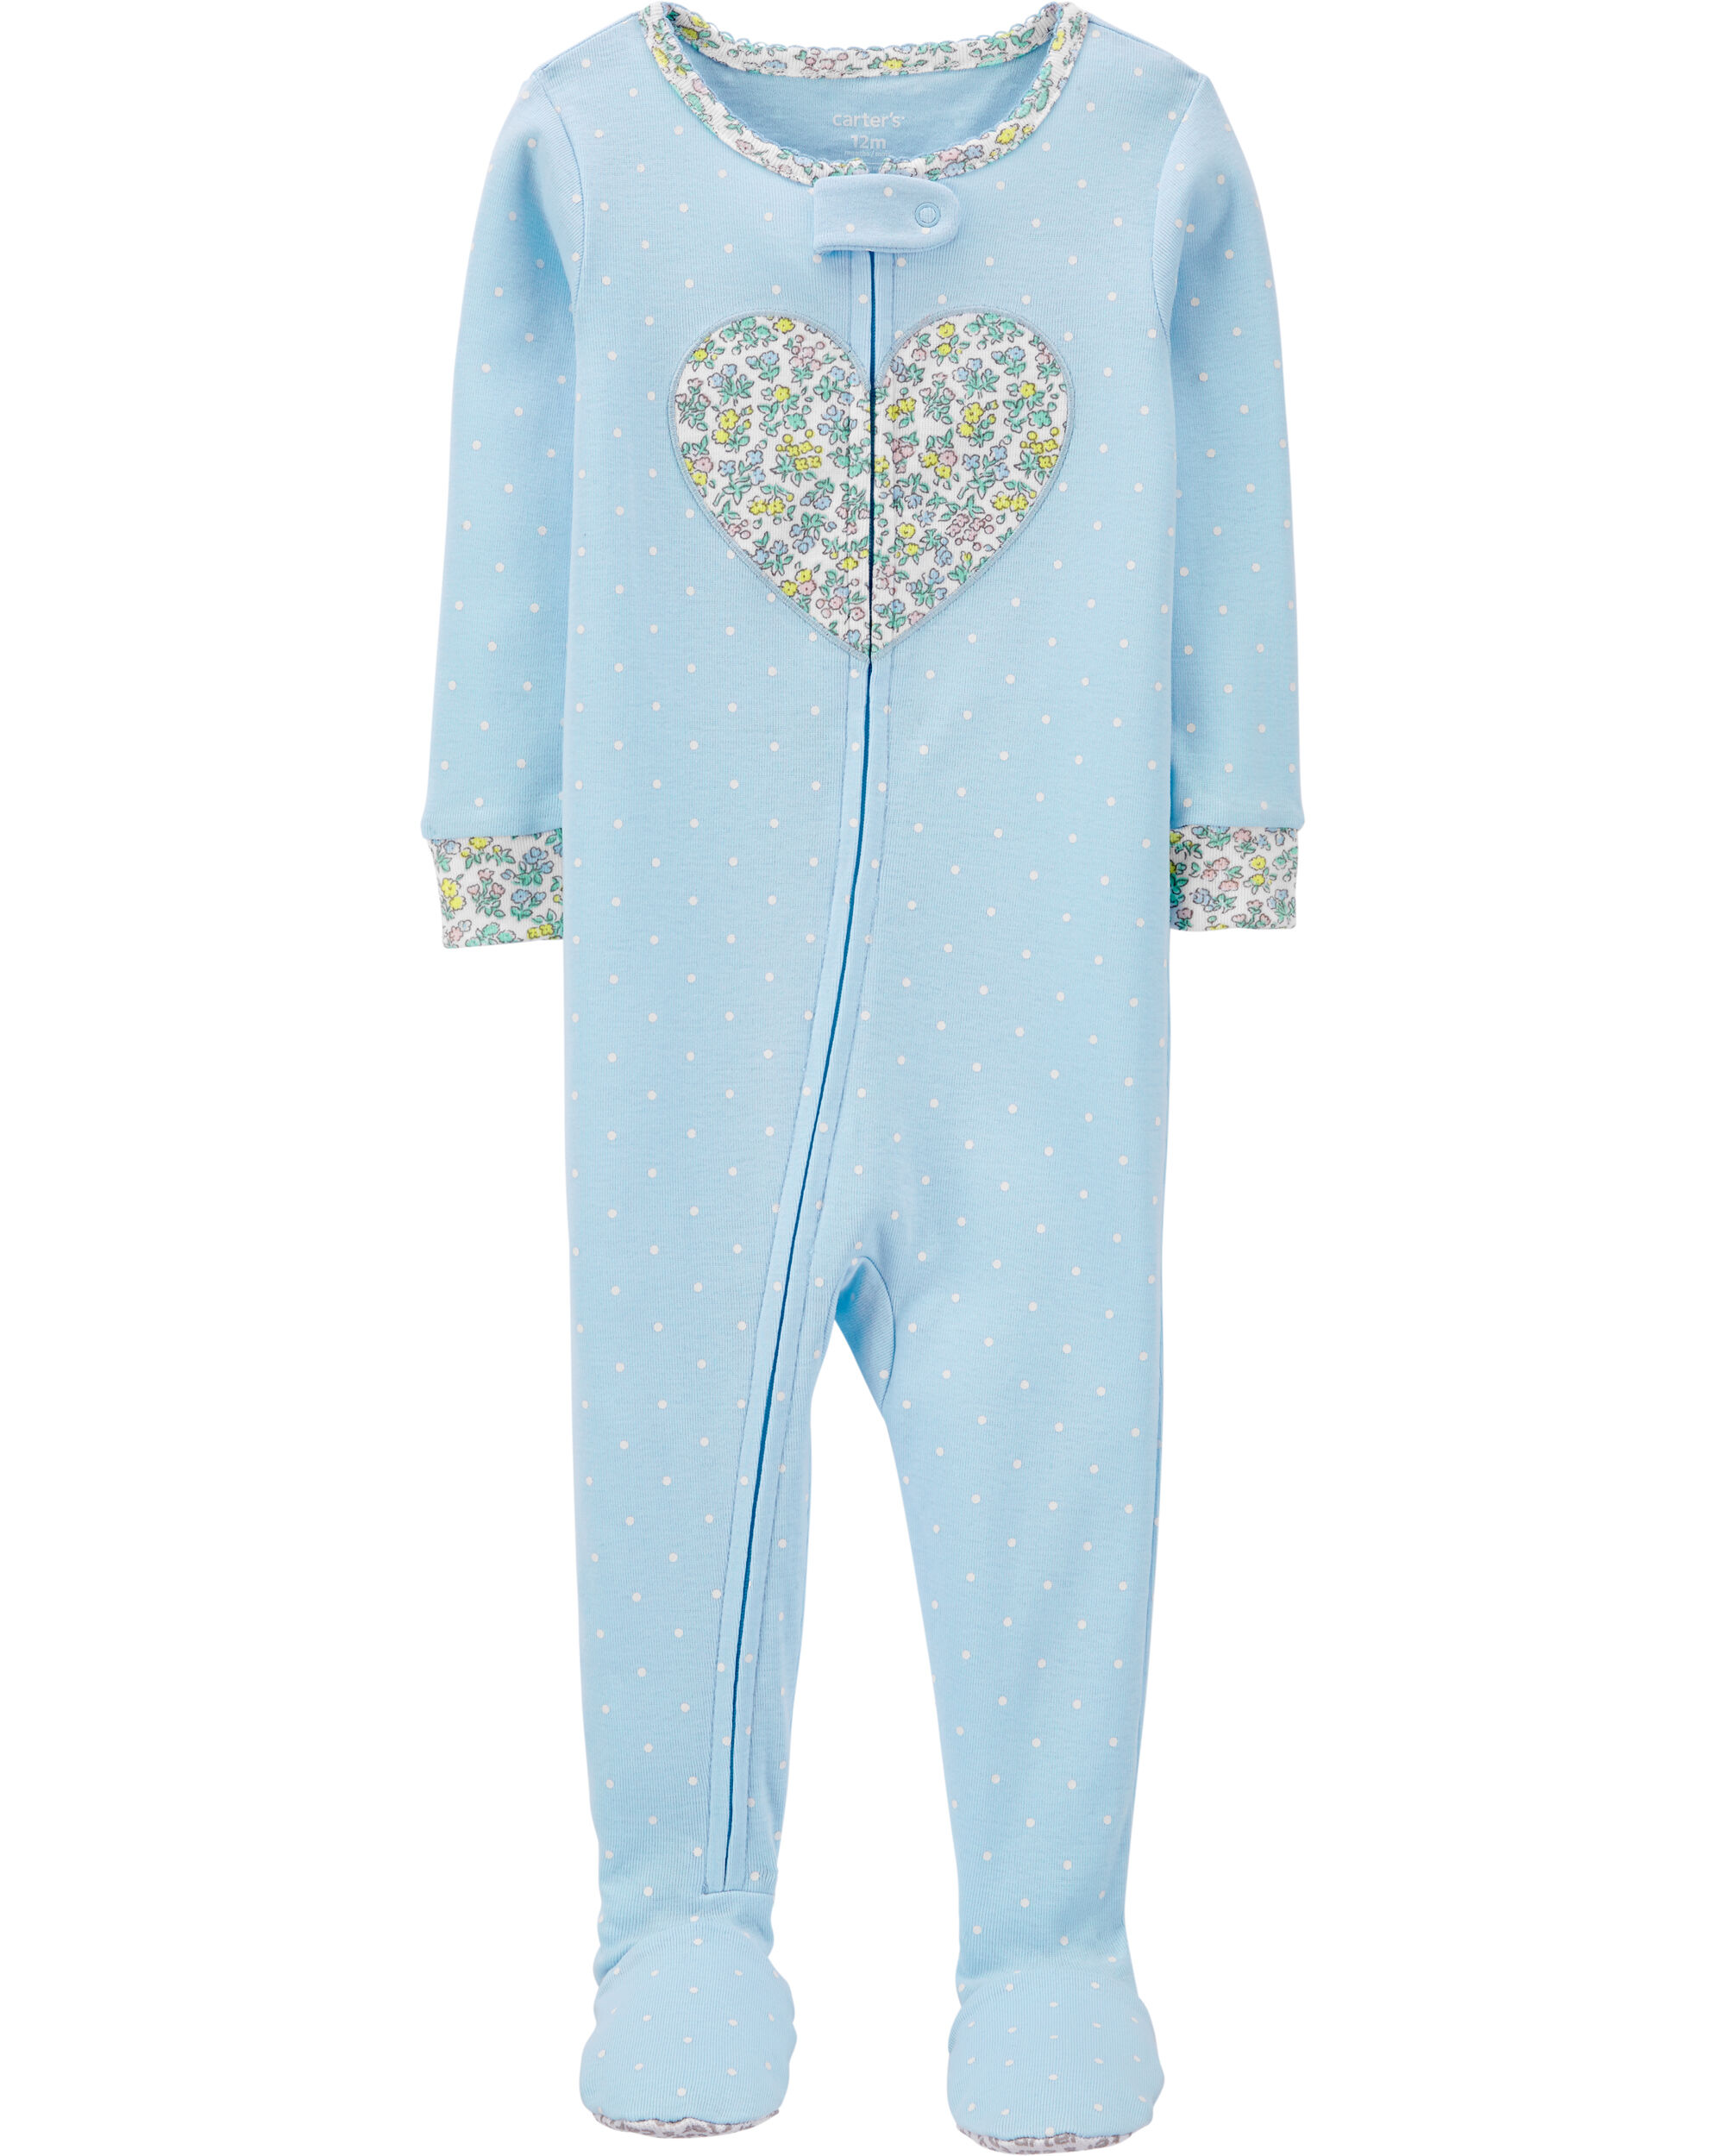 1-Piece Floral Heart Snug Fit Cotton Footie PJs